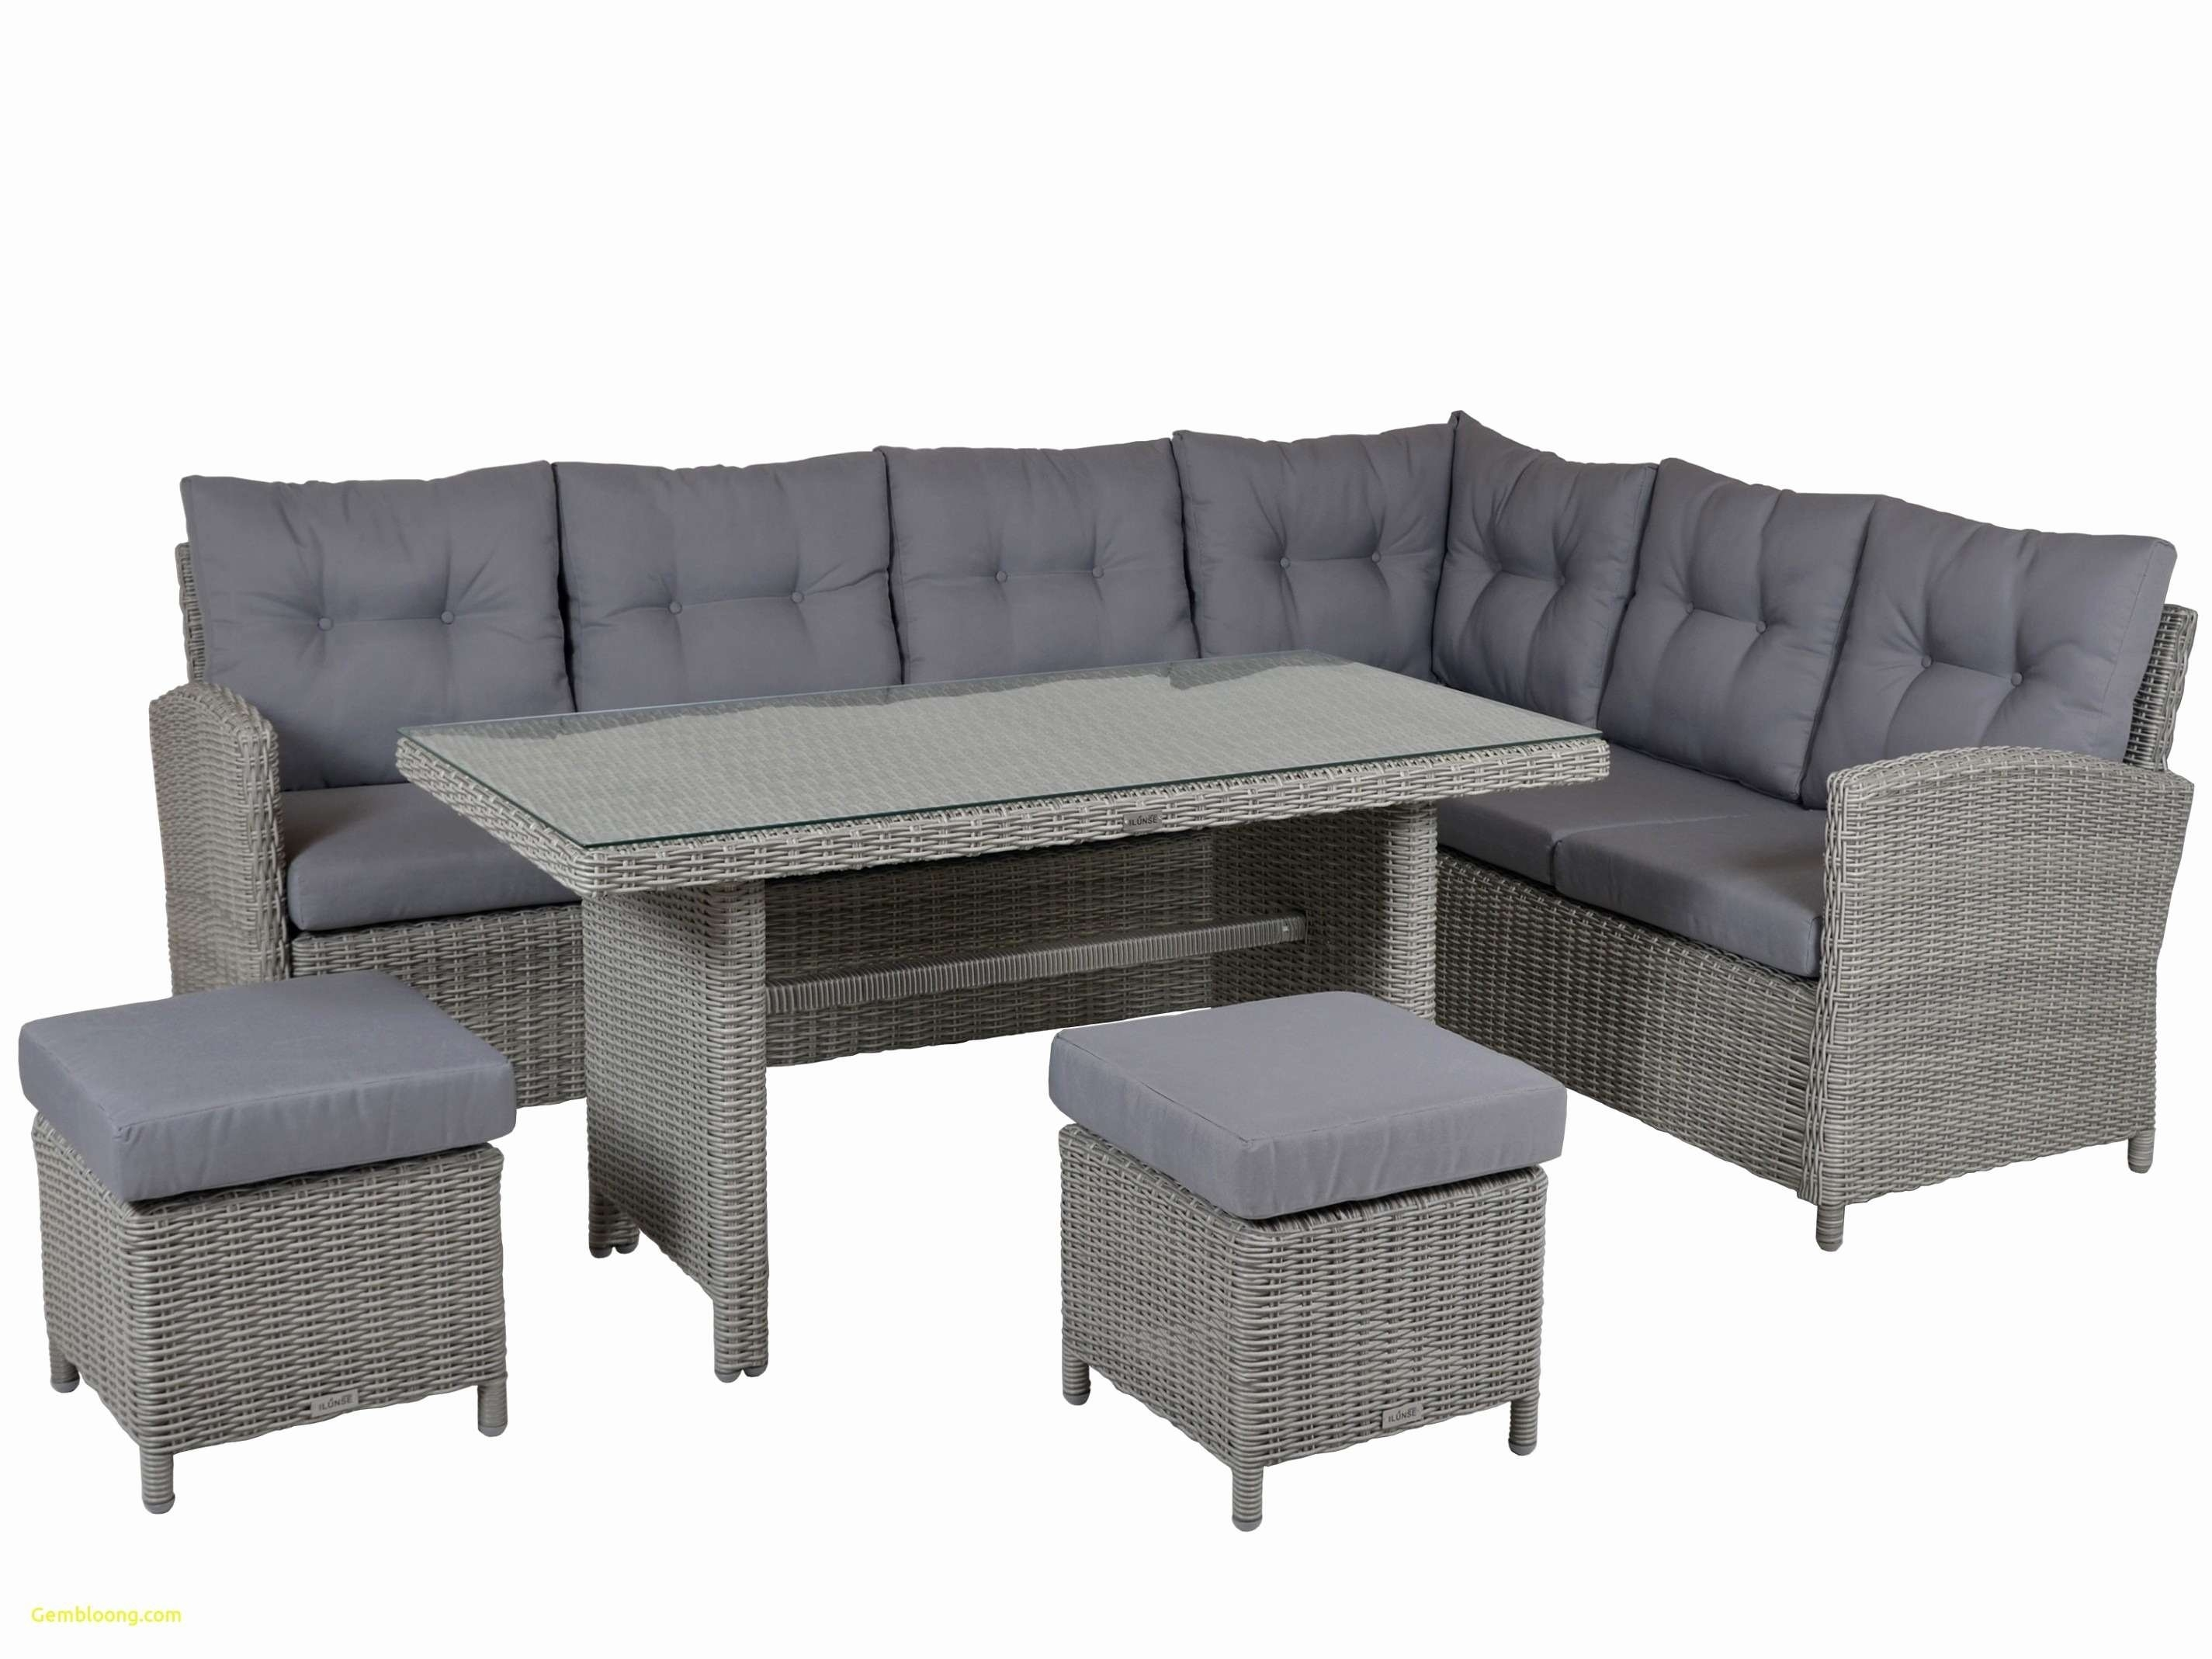 Fabulous 25 Power Reclining Sectional Sofa Favorite For Calder Grey 6 Piece Manual Reclining Sectionals (Image 8 of 25)